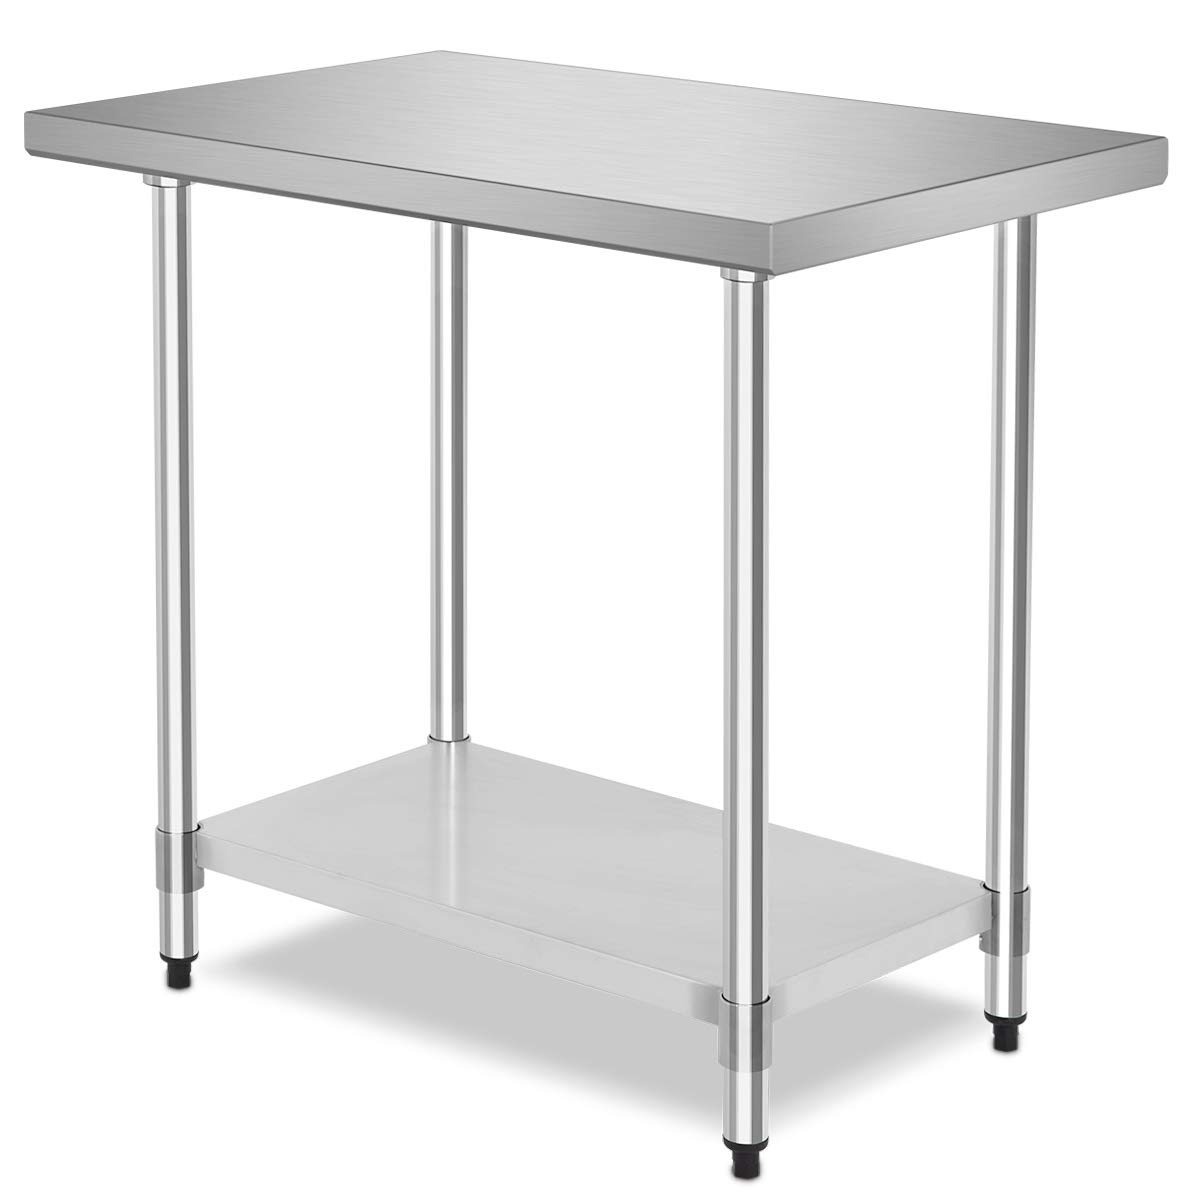 "36"" x 24"" NSF Stainless Steel Food Prep Table, Heavy Duty Commercial Kitchen Food Prep Table & Work Table, Wheels Installable, Adjustable Shelf, by WATERJOY"